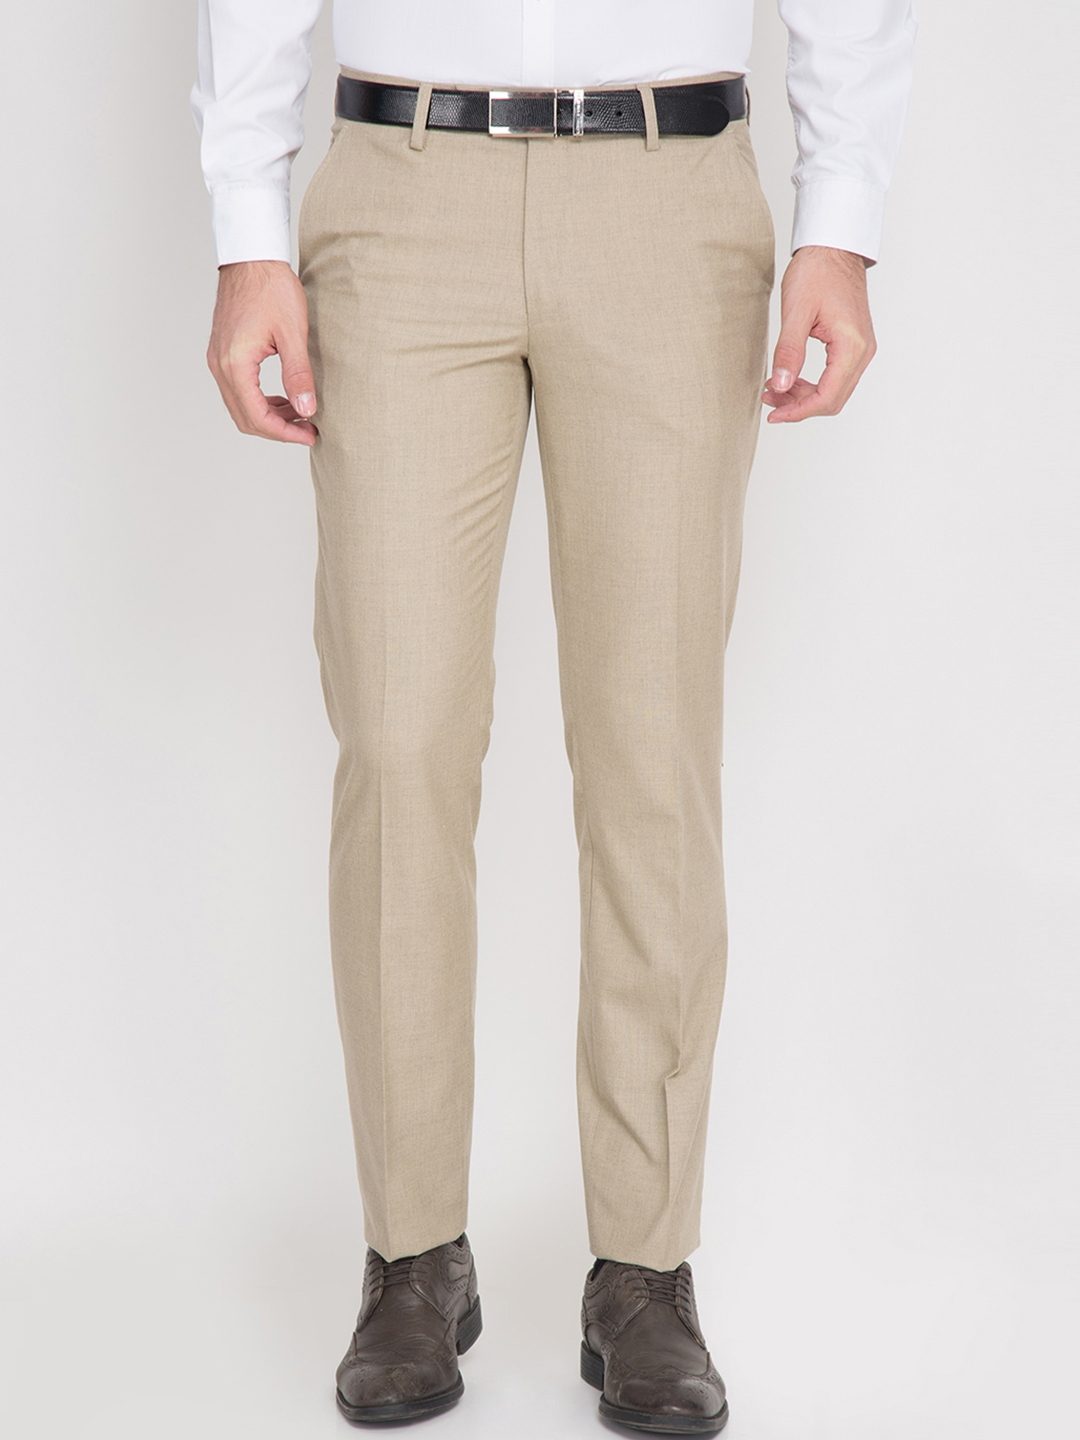 61415c39680 Buy Black Coffee Beige Formal Trousers - Trousers for Men 1728500 ...